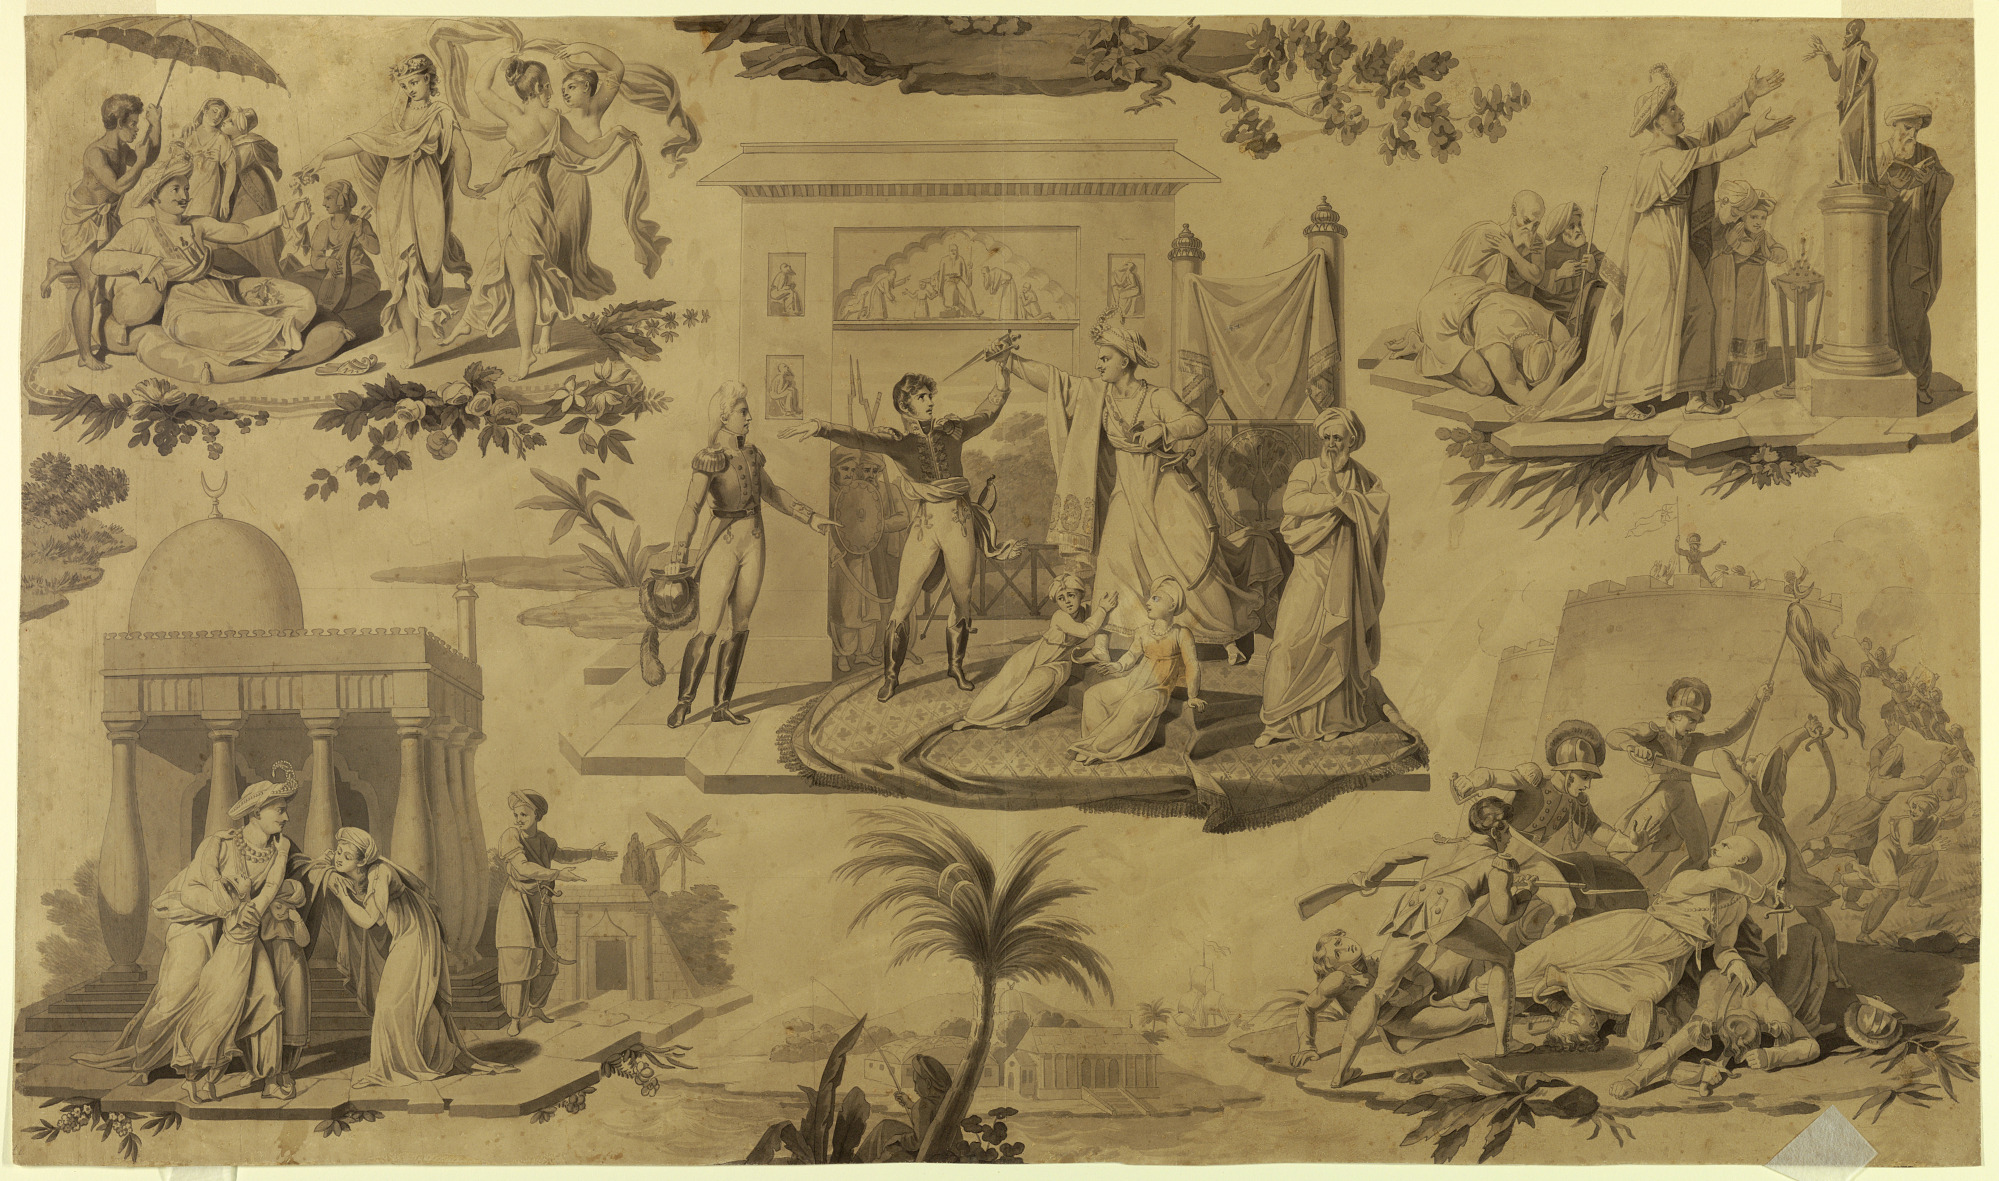 Cartoon for Printed Cotton Textile: The French in Egypt [Les Francais en Egypte]